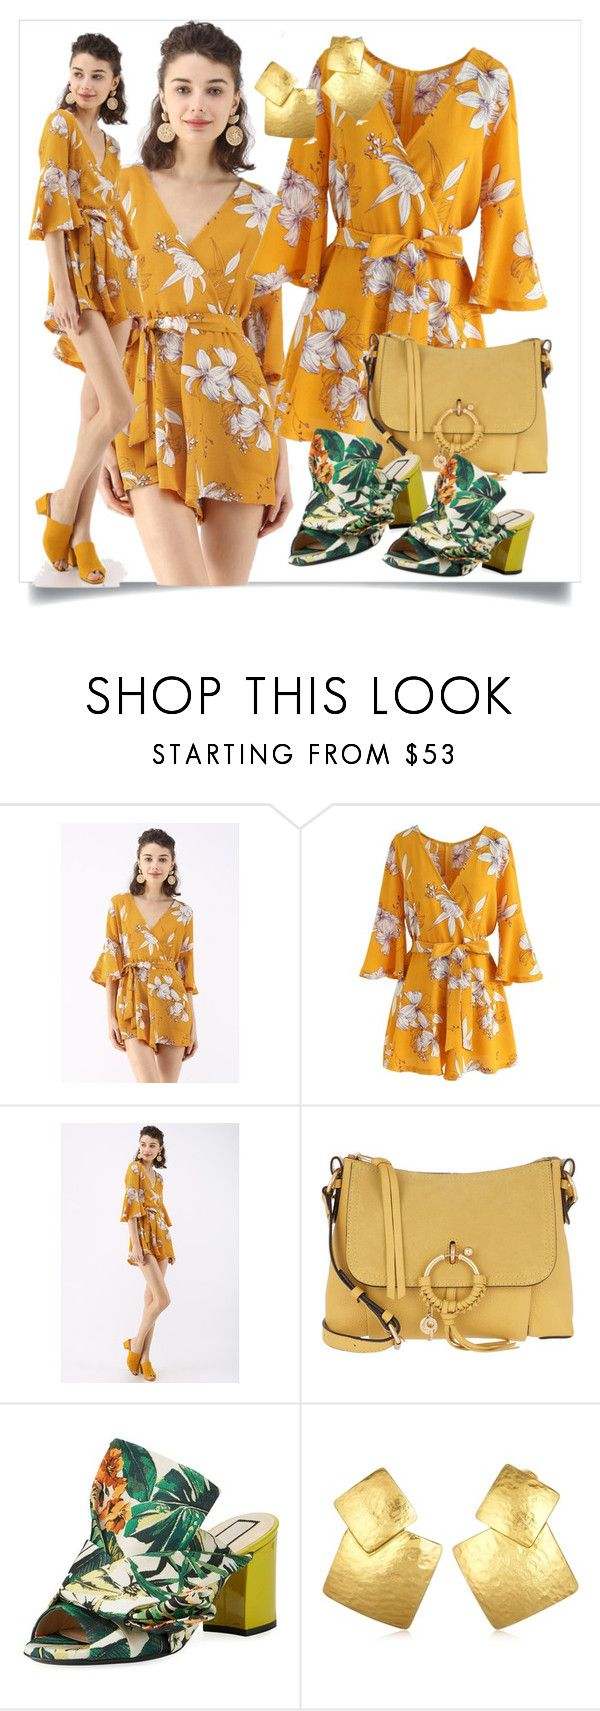 """""""Yellow playsuit   shopelot"""" by shopelot ❤ liked on Polyvore featuring Chicwish, See by Chloé, N°21 and Oscar de la Renta"""